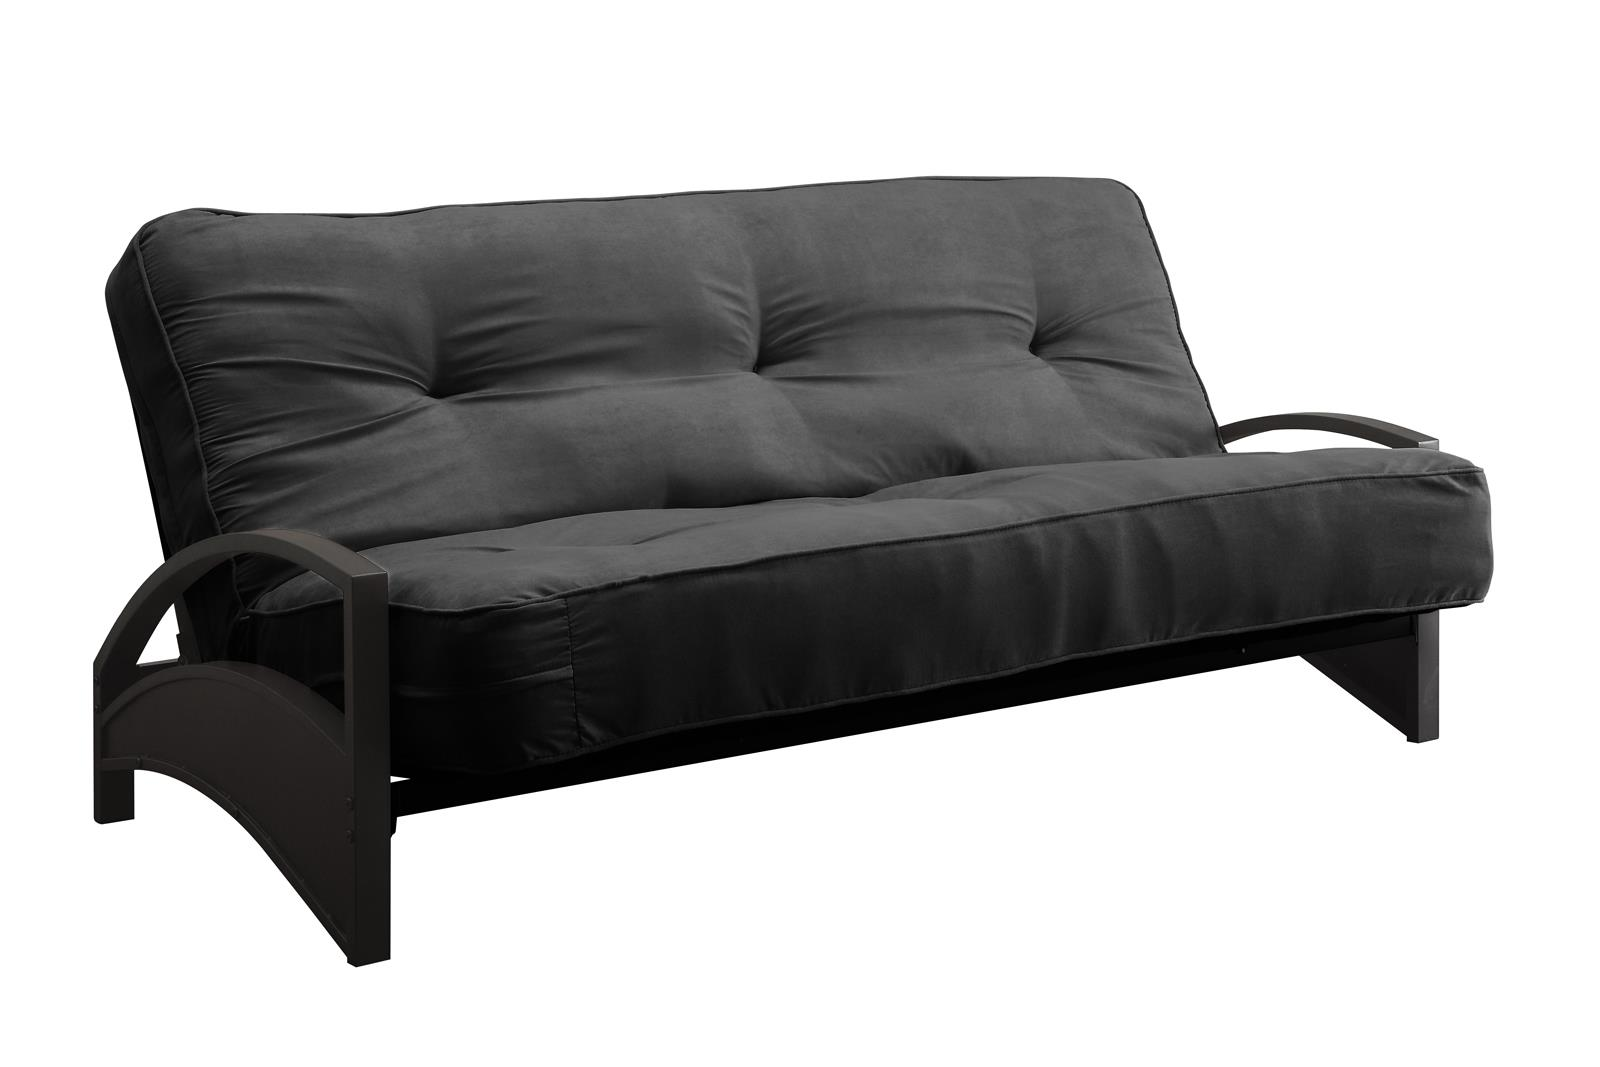 Dhp Alessa Black Metal Futon Frame W Coil Full Mattress Multiple Colorultiple Thicknesses Com